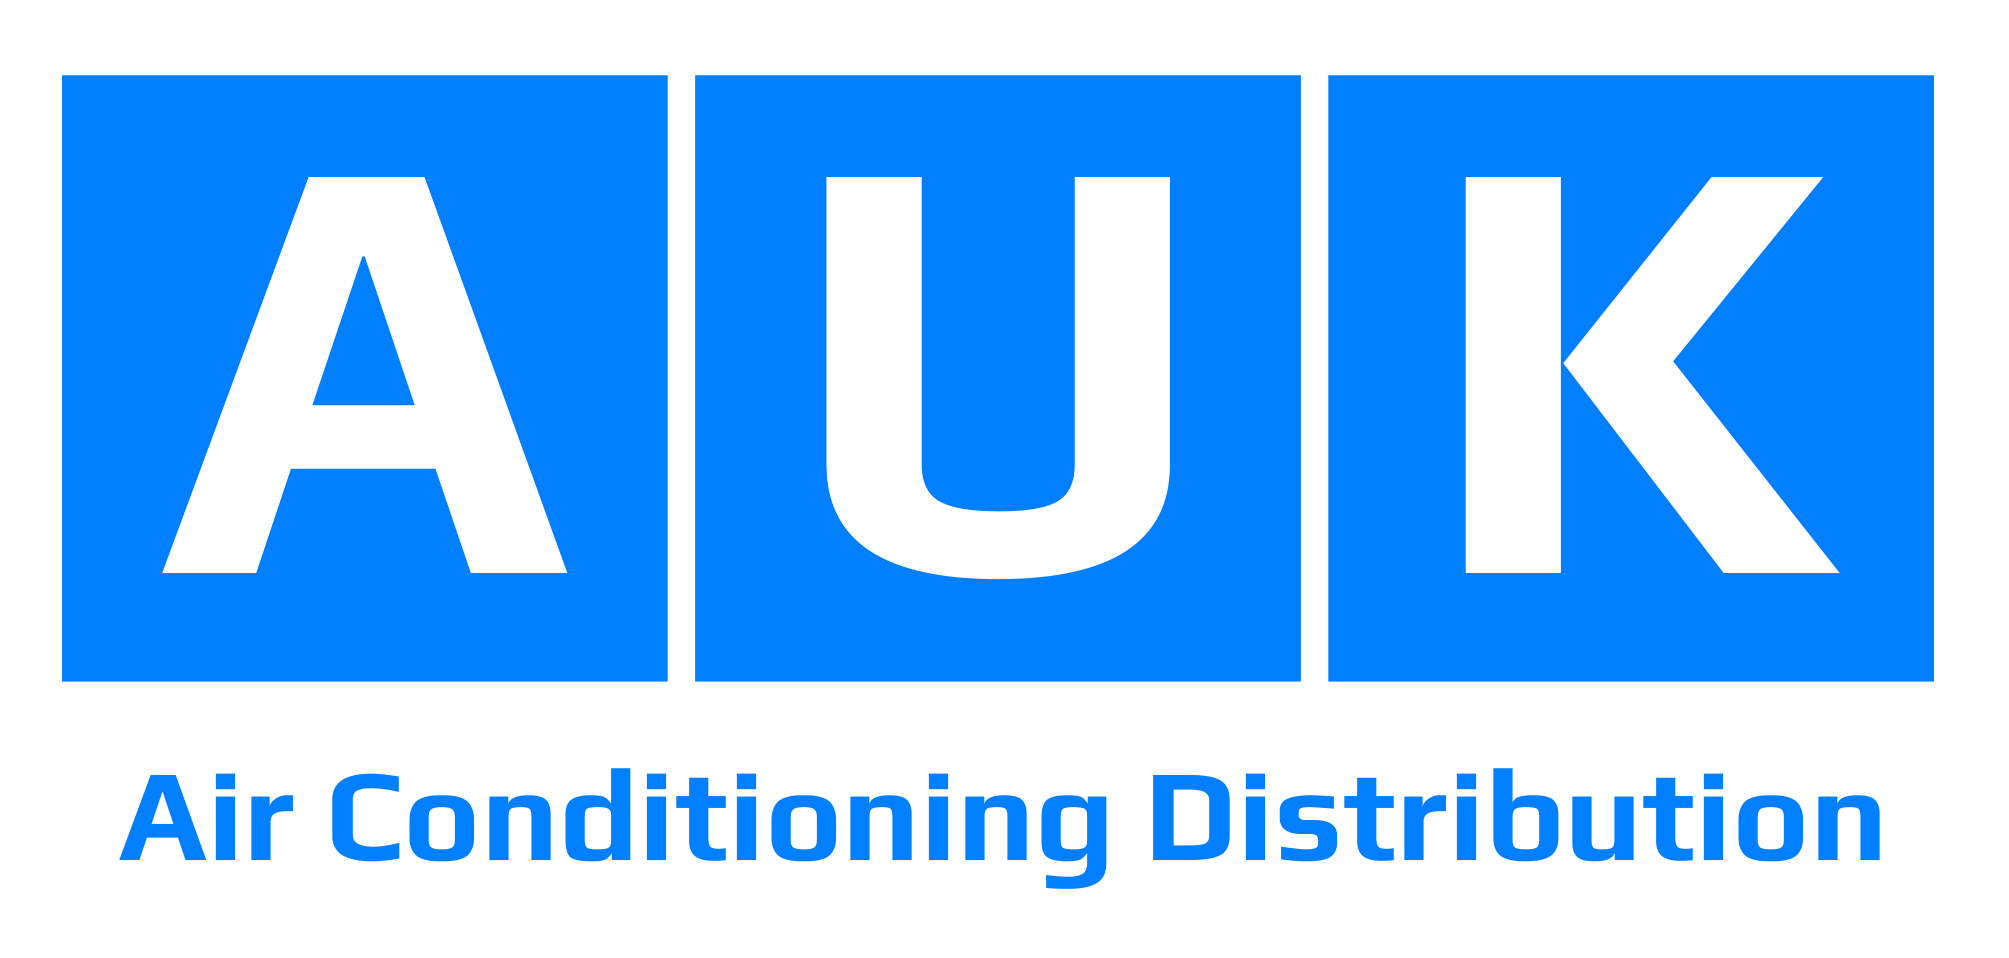 Auk Distribution Ltd logo